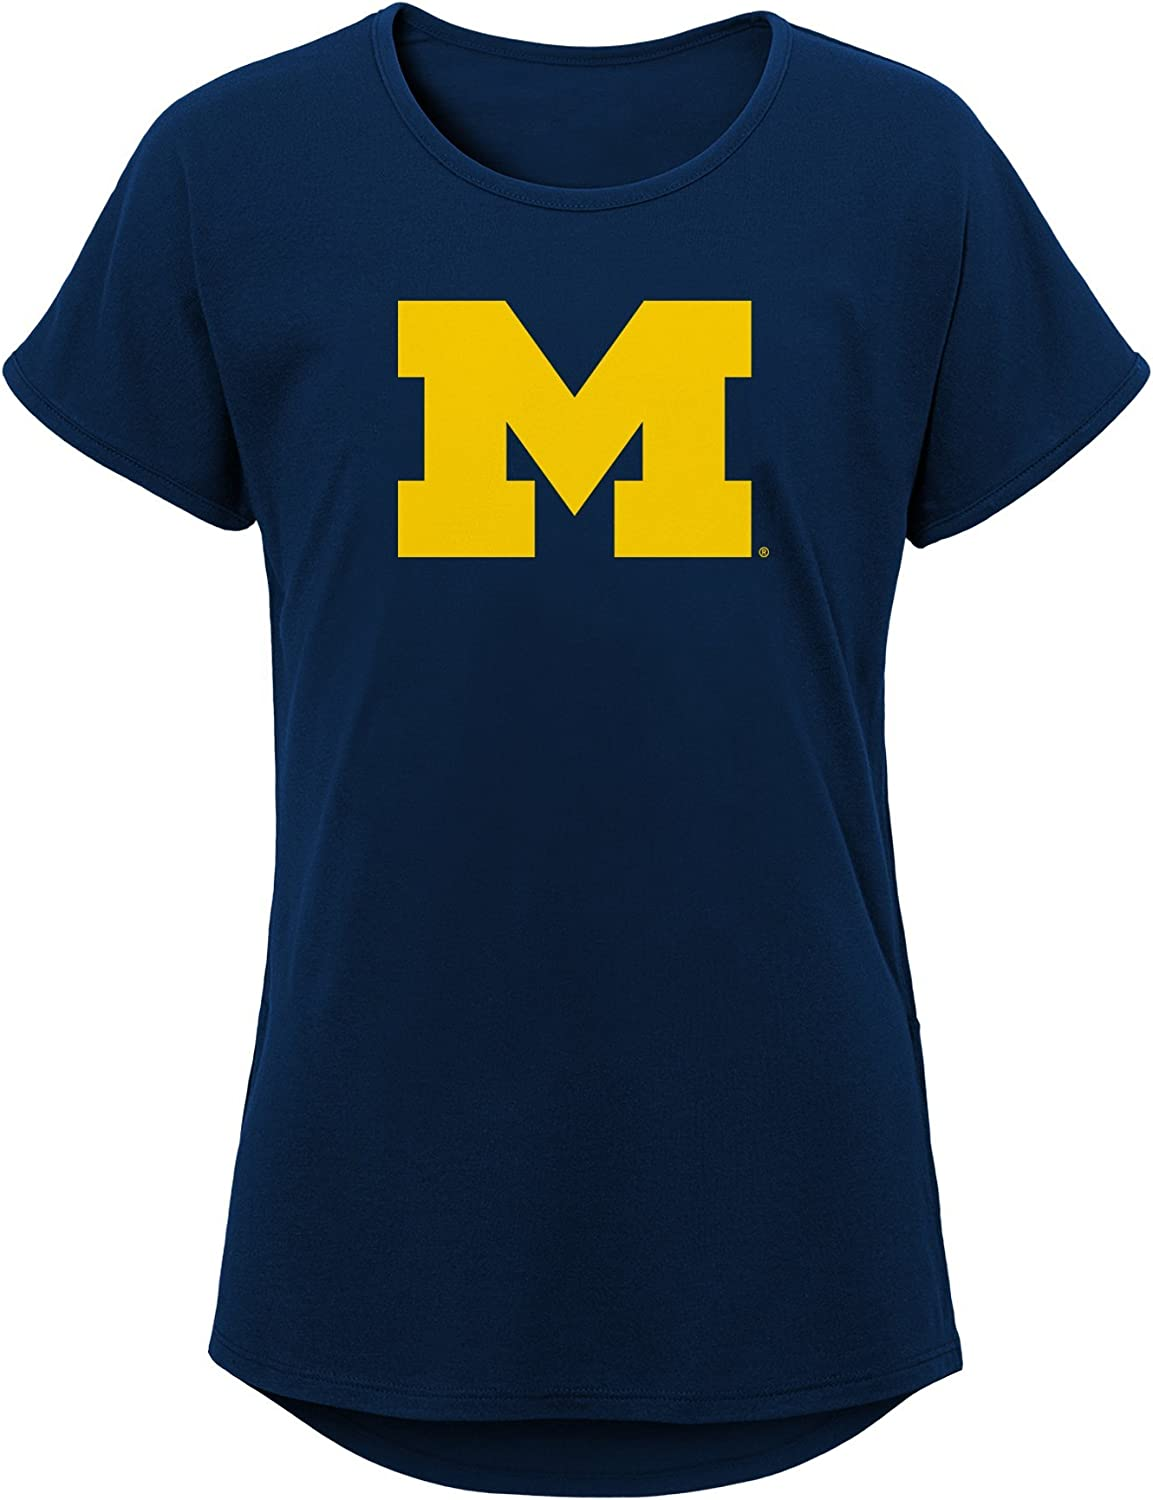 Youth Medium Team color NCAA Michigan Wolverines Girls Outerstuff Primary Logo Dolman Tee 10-12